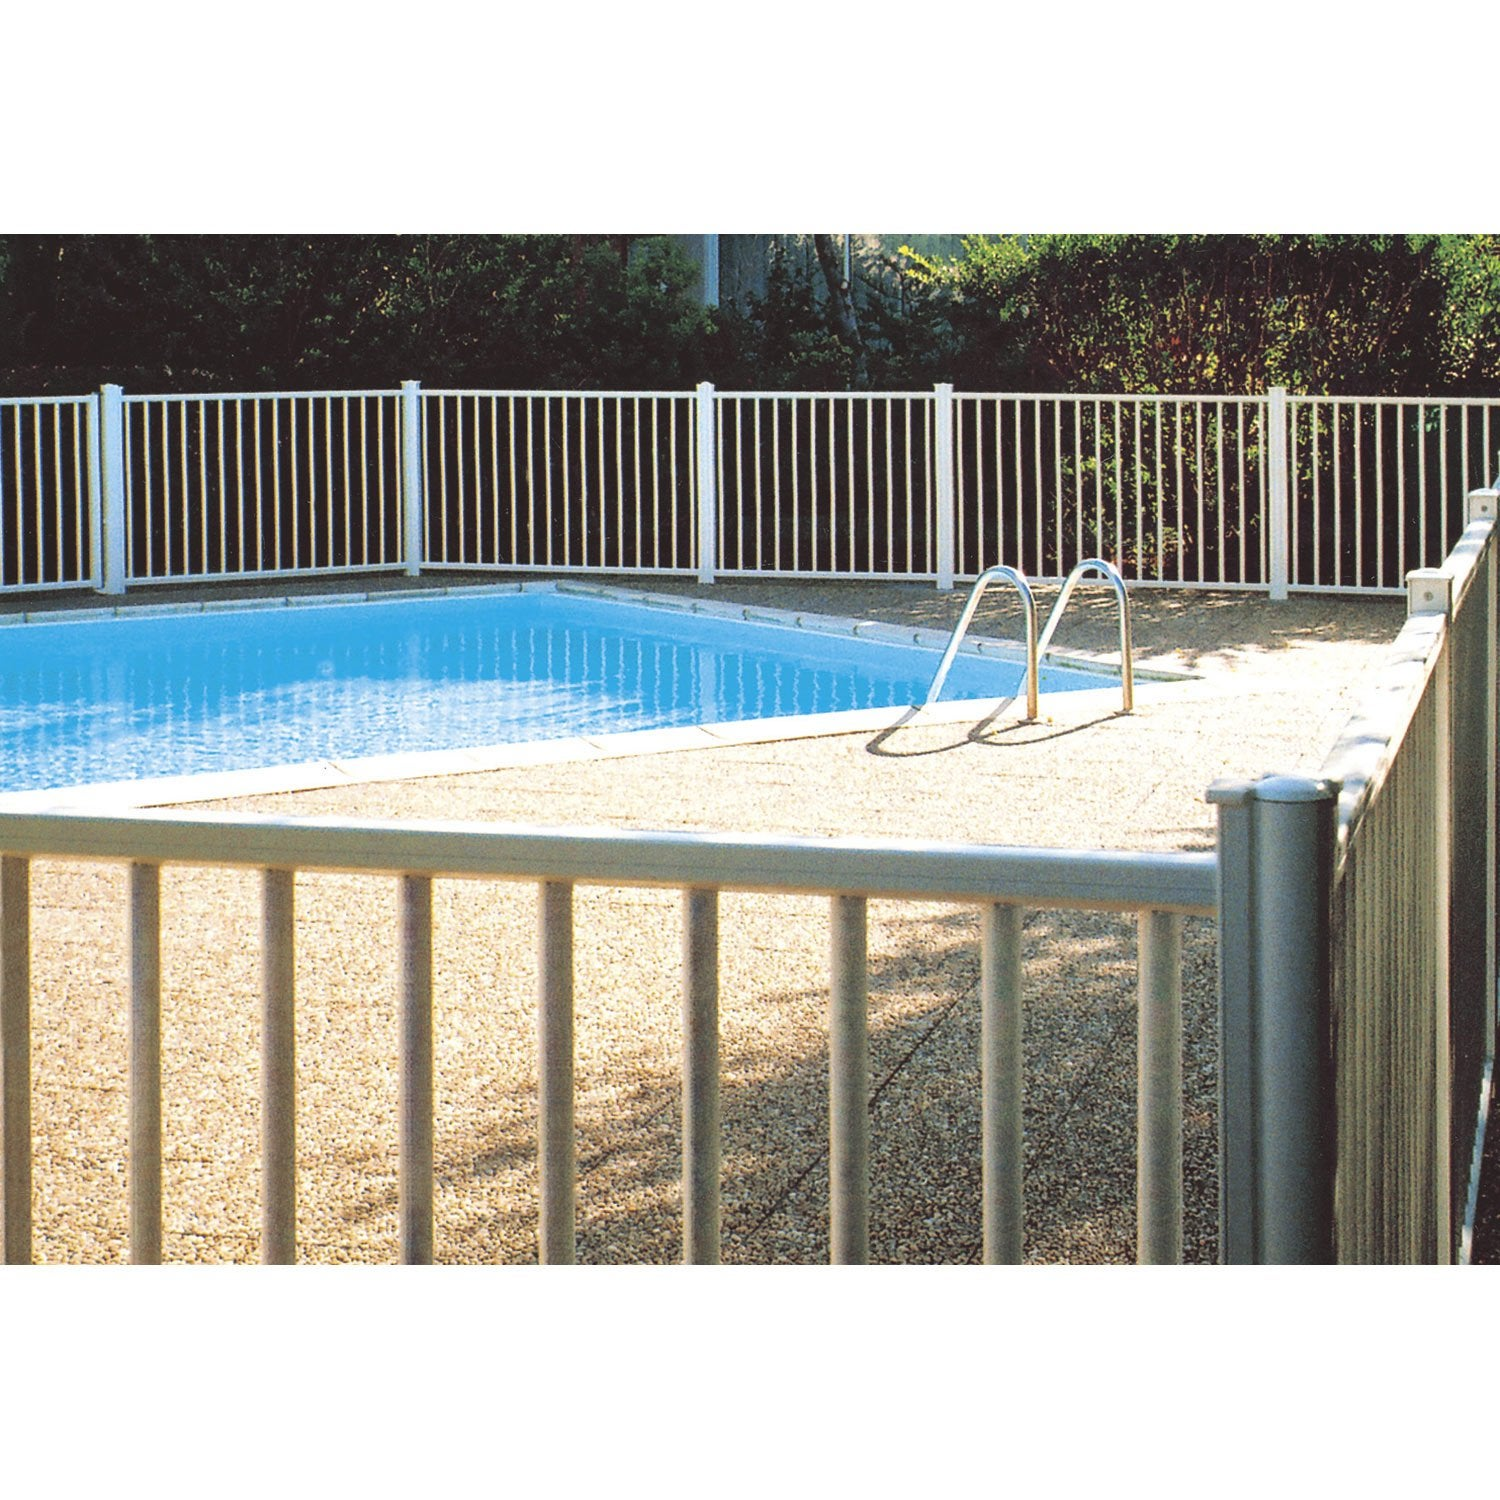 Barri re pour piscine aluminium issambres blanc 9010 h for Portillon en fer pas cher